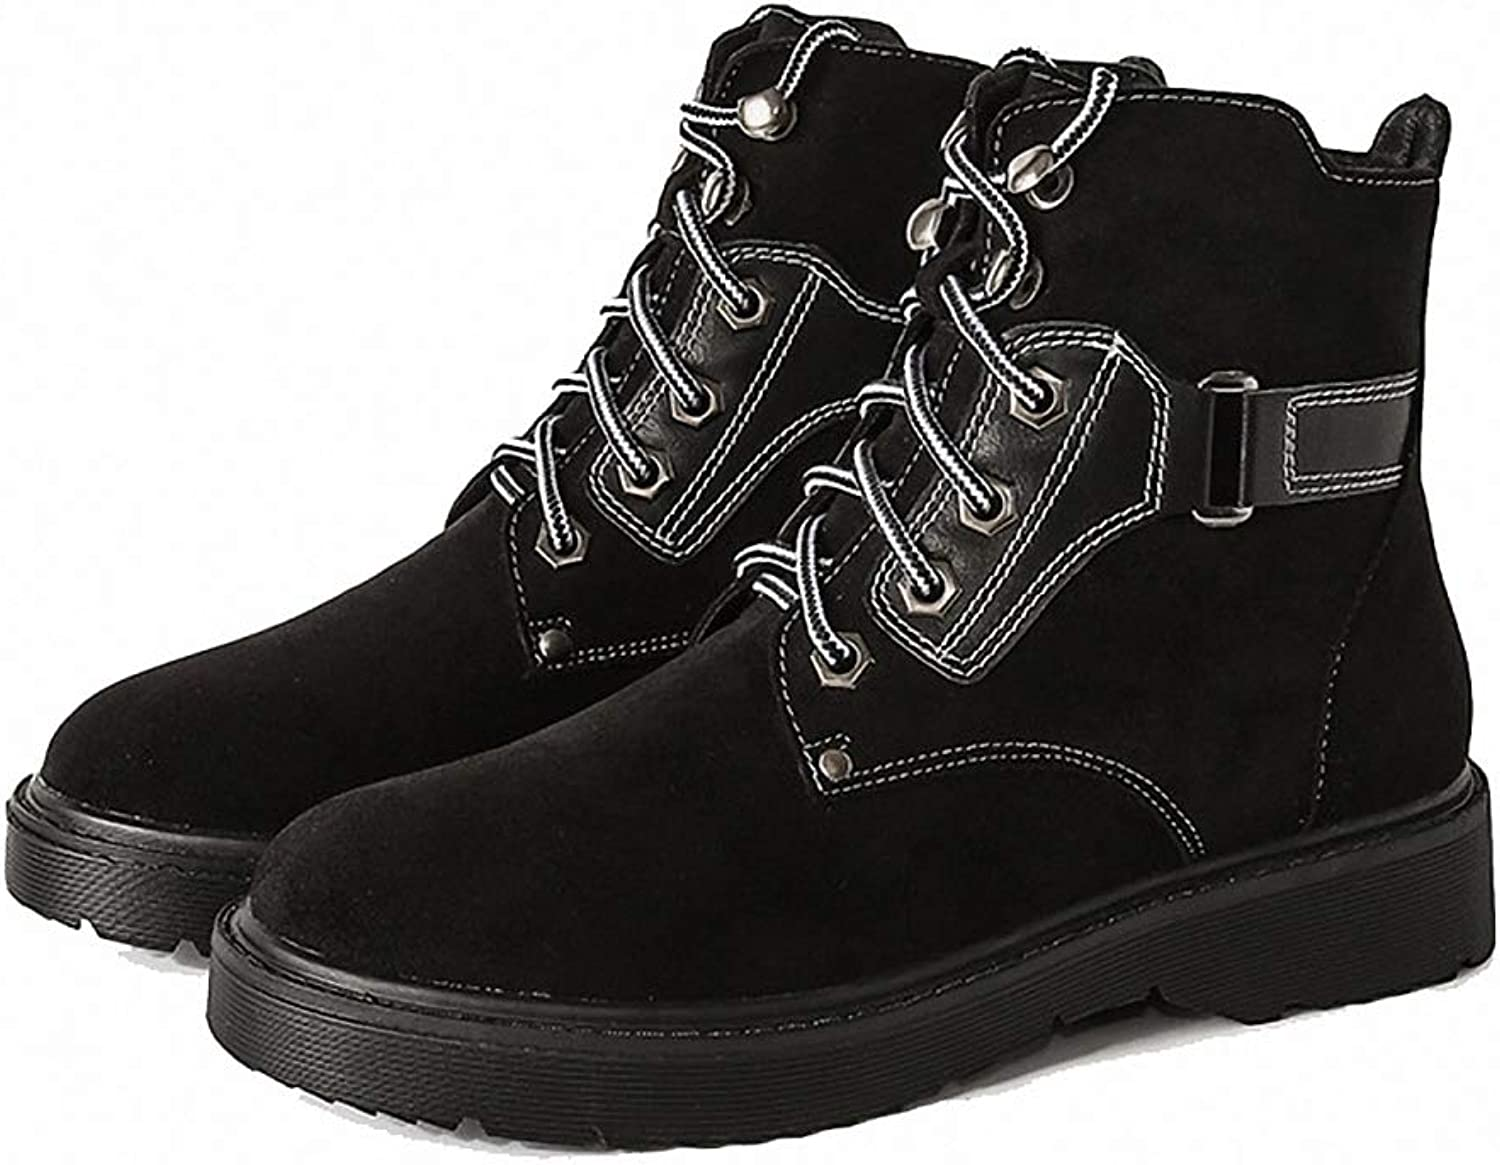 Kyle Walsh Pa Women's Martin Boots Female Vintage Winter Student Ankle Booties Lace-up Large Size shoes